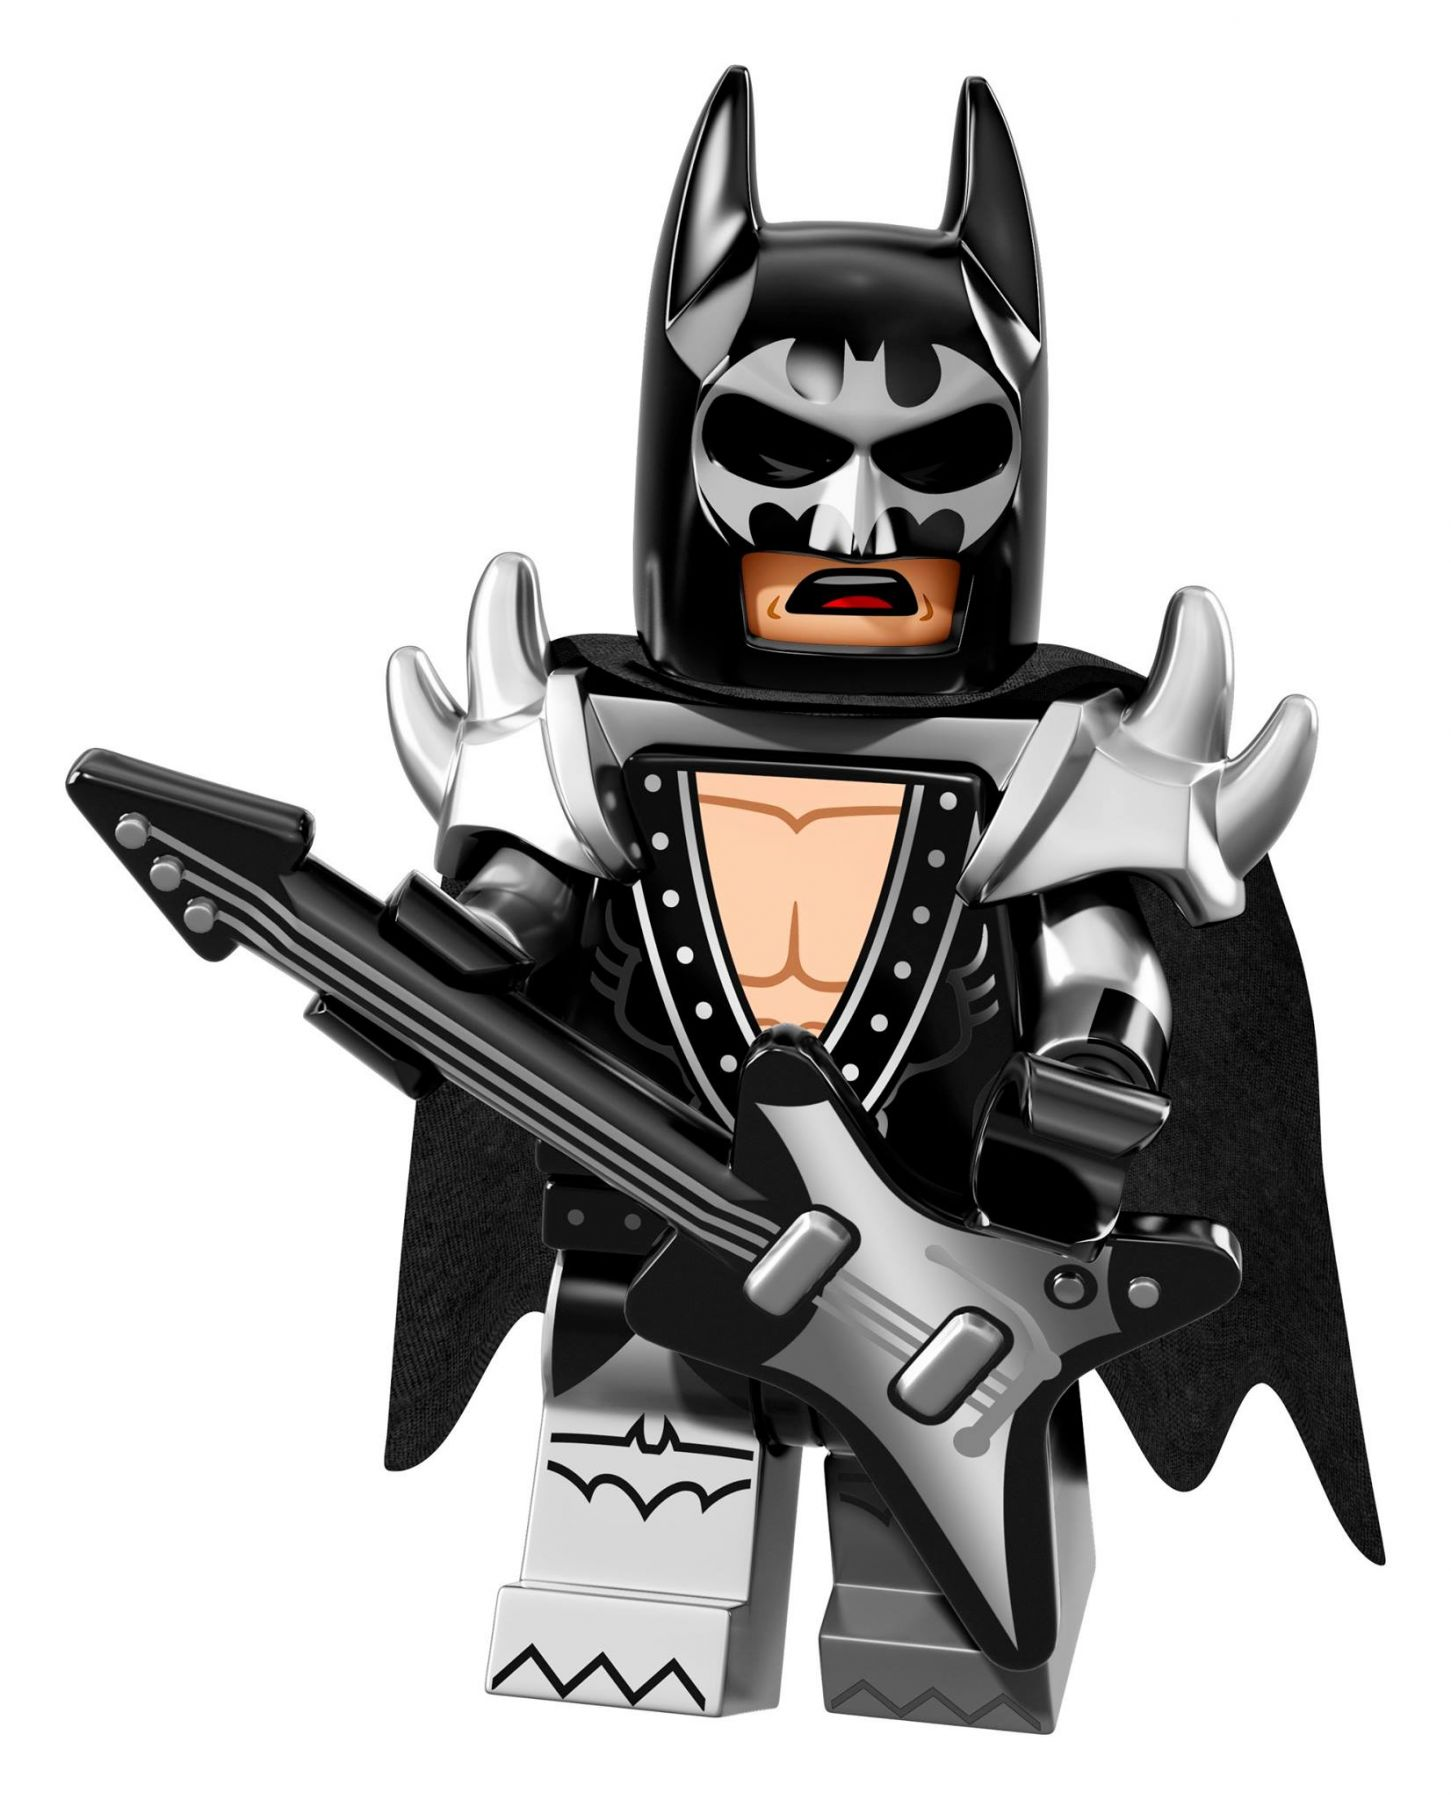 LEGO Collectable Minifigures 71017 LEGO® Batman Movie Minifiguren Serie 71017_LEGO_Batman_Movie_Minifiguren_Serie_figur09.jpg